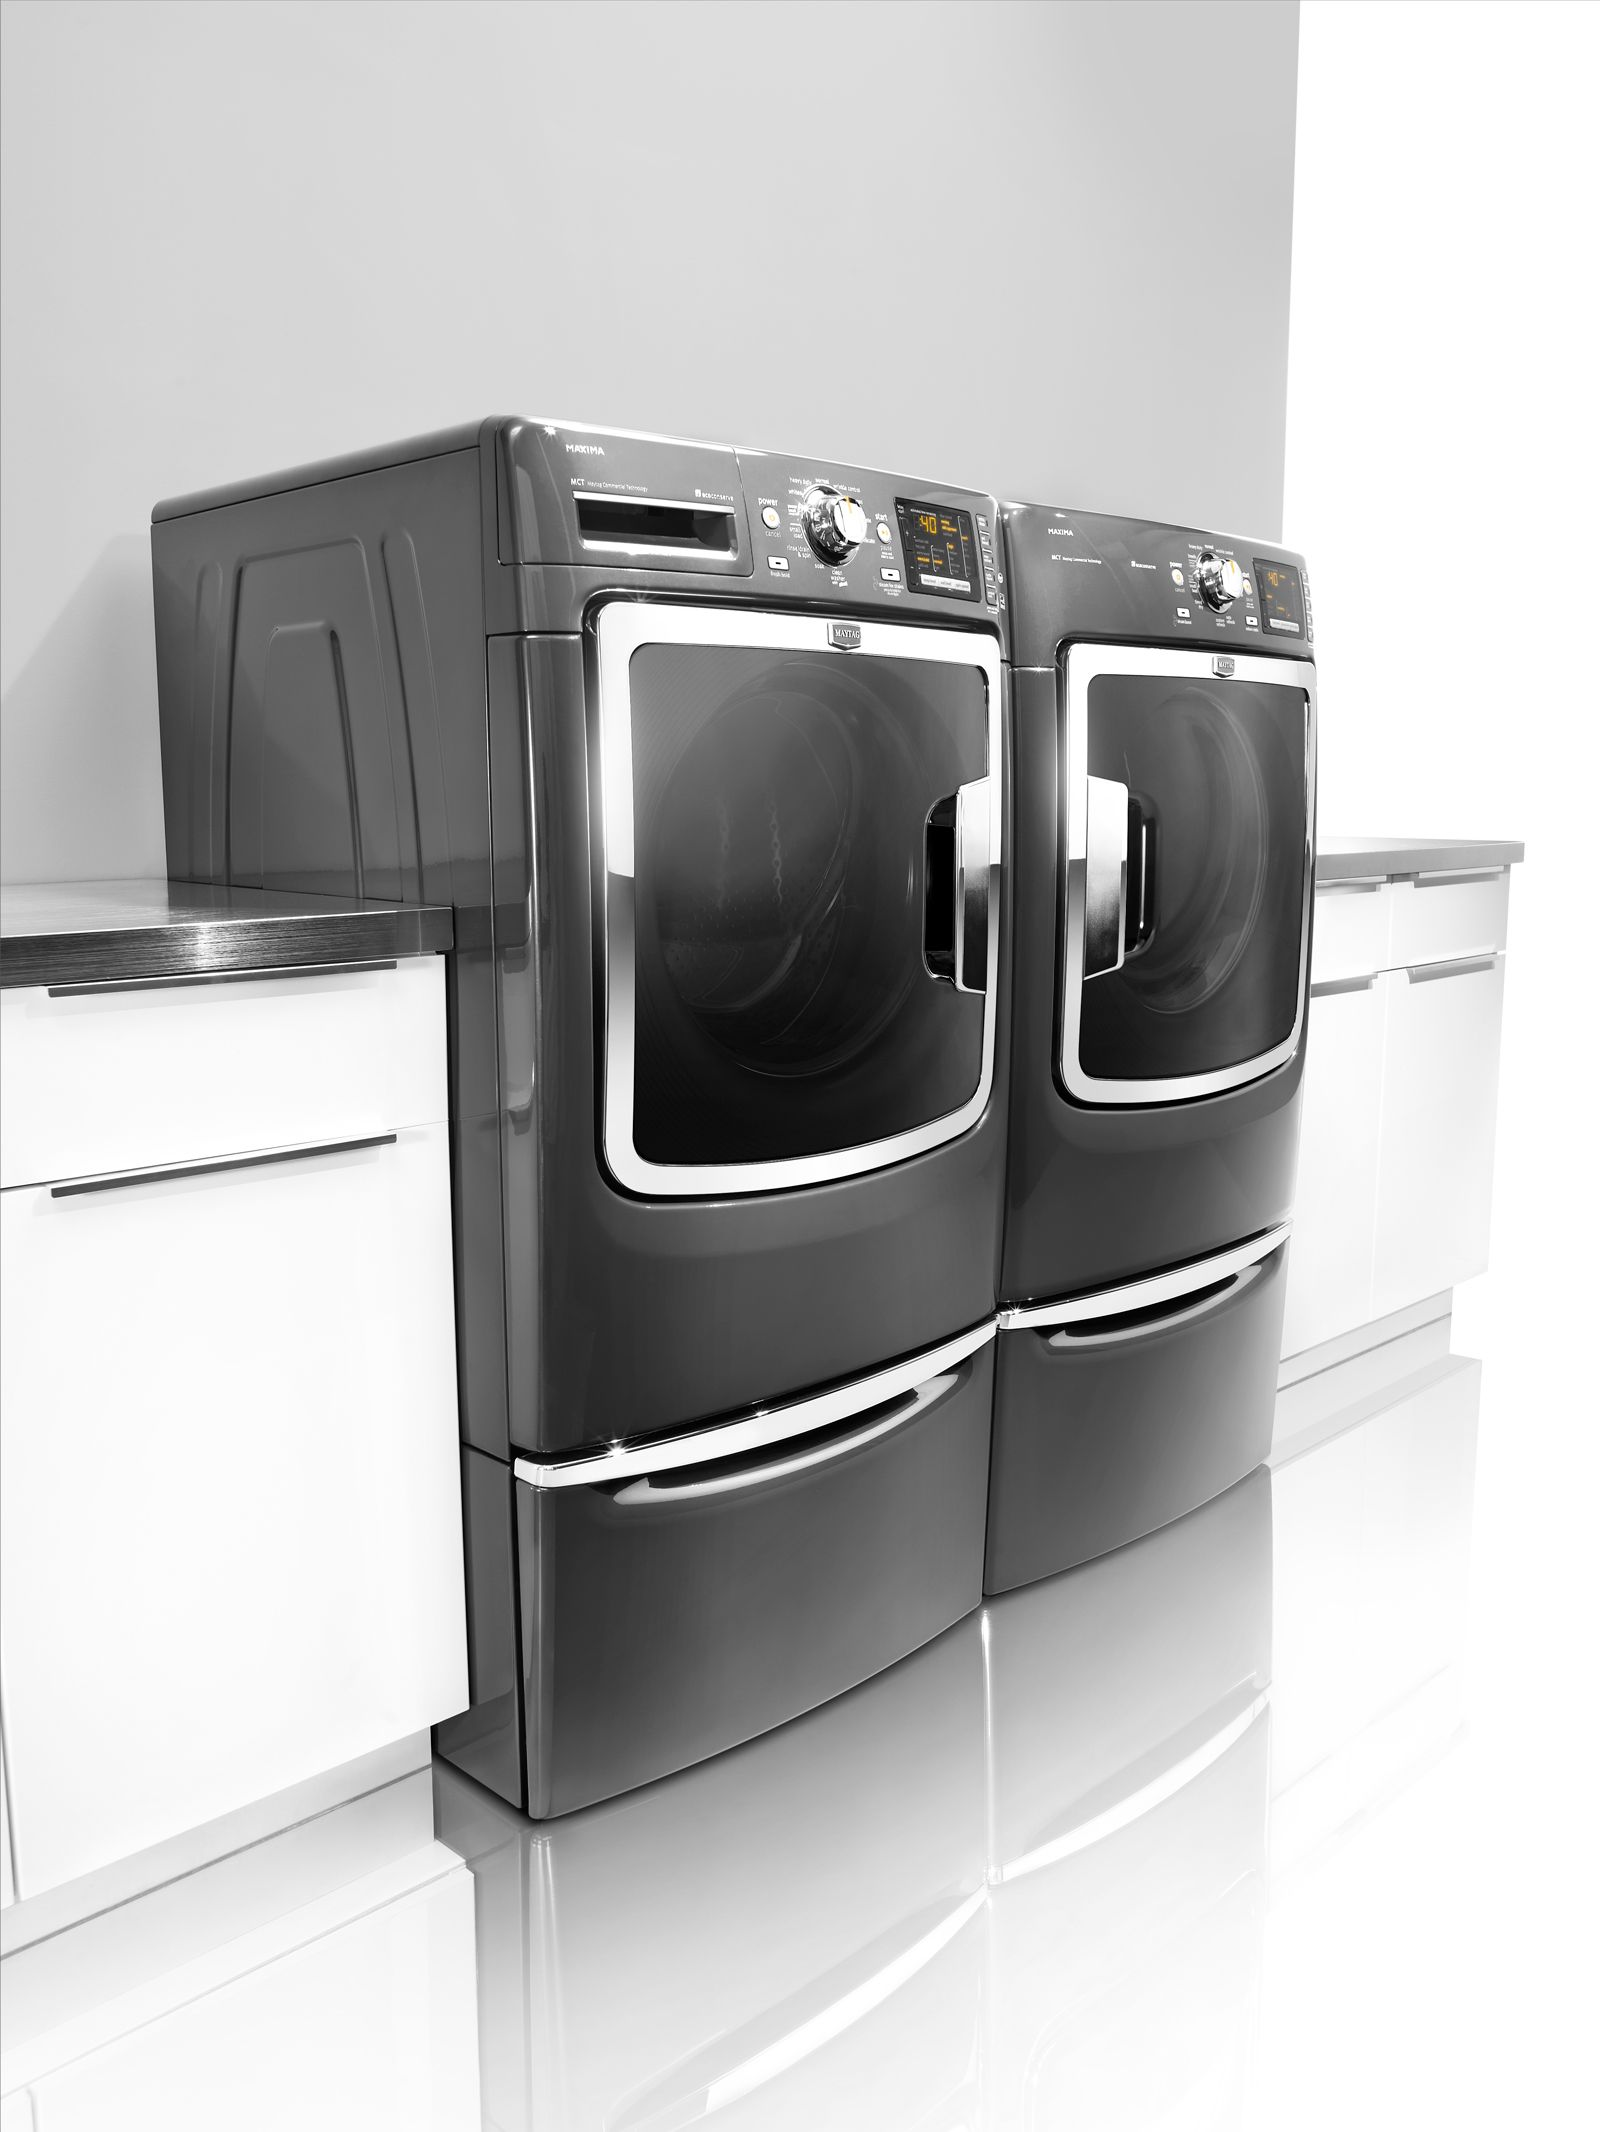 srge nd for pedestl wsher cretes mchines dryer washer info sale lg acke maytag pedestal and spce neptune